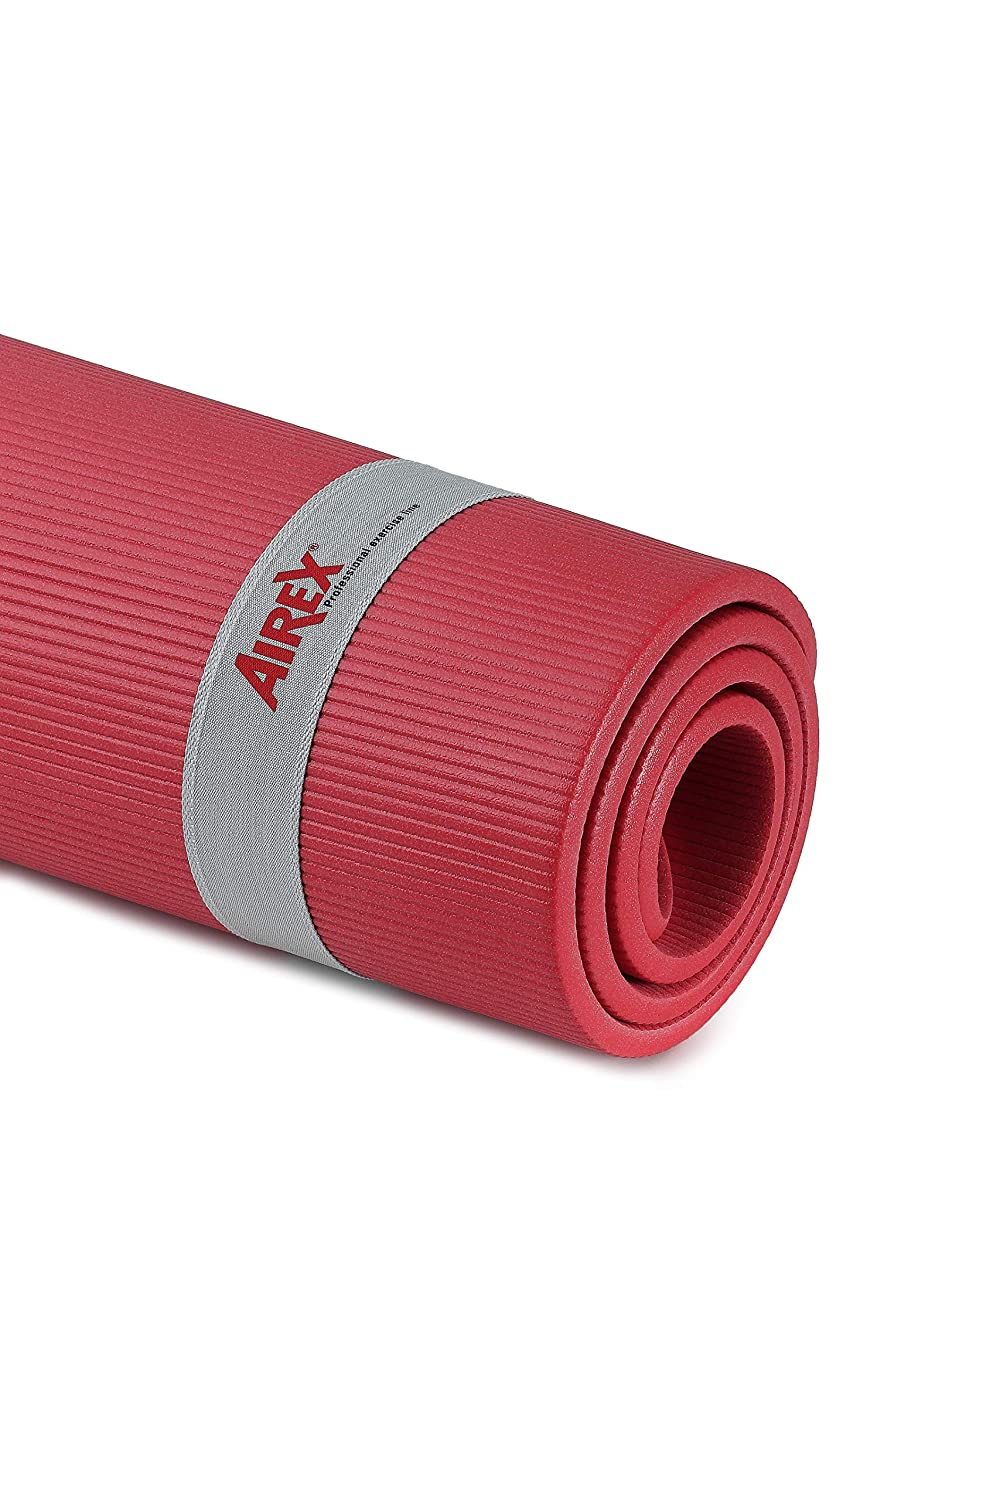 Amazon.com: Airex Atlas Workout Exercise Mat for Fitness ...